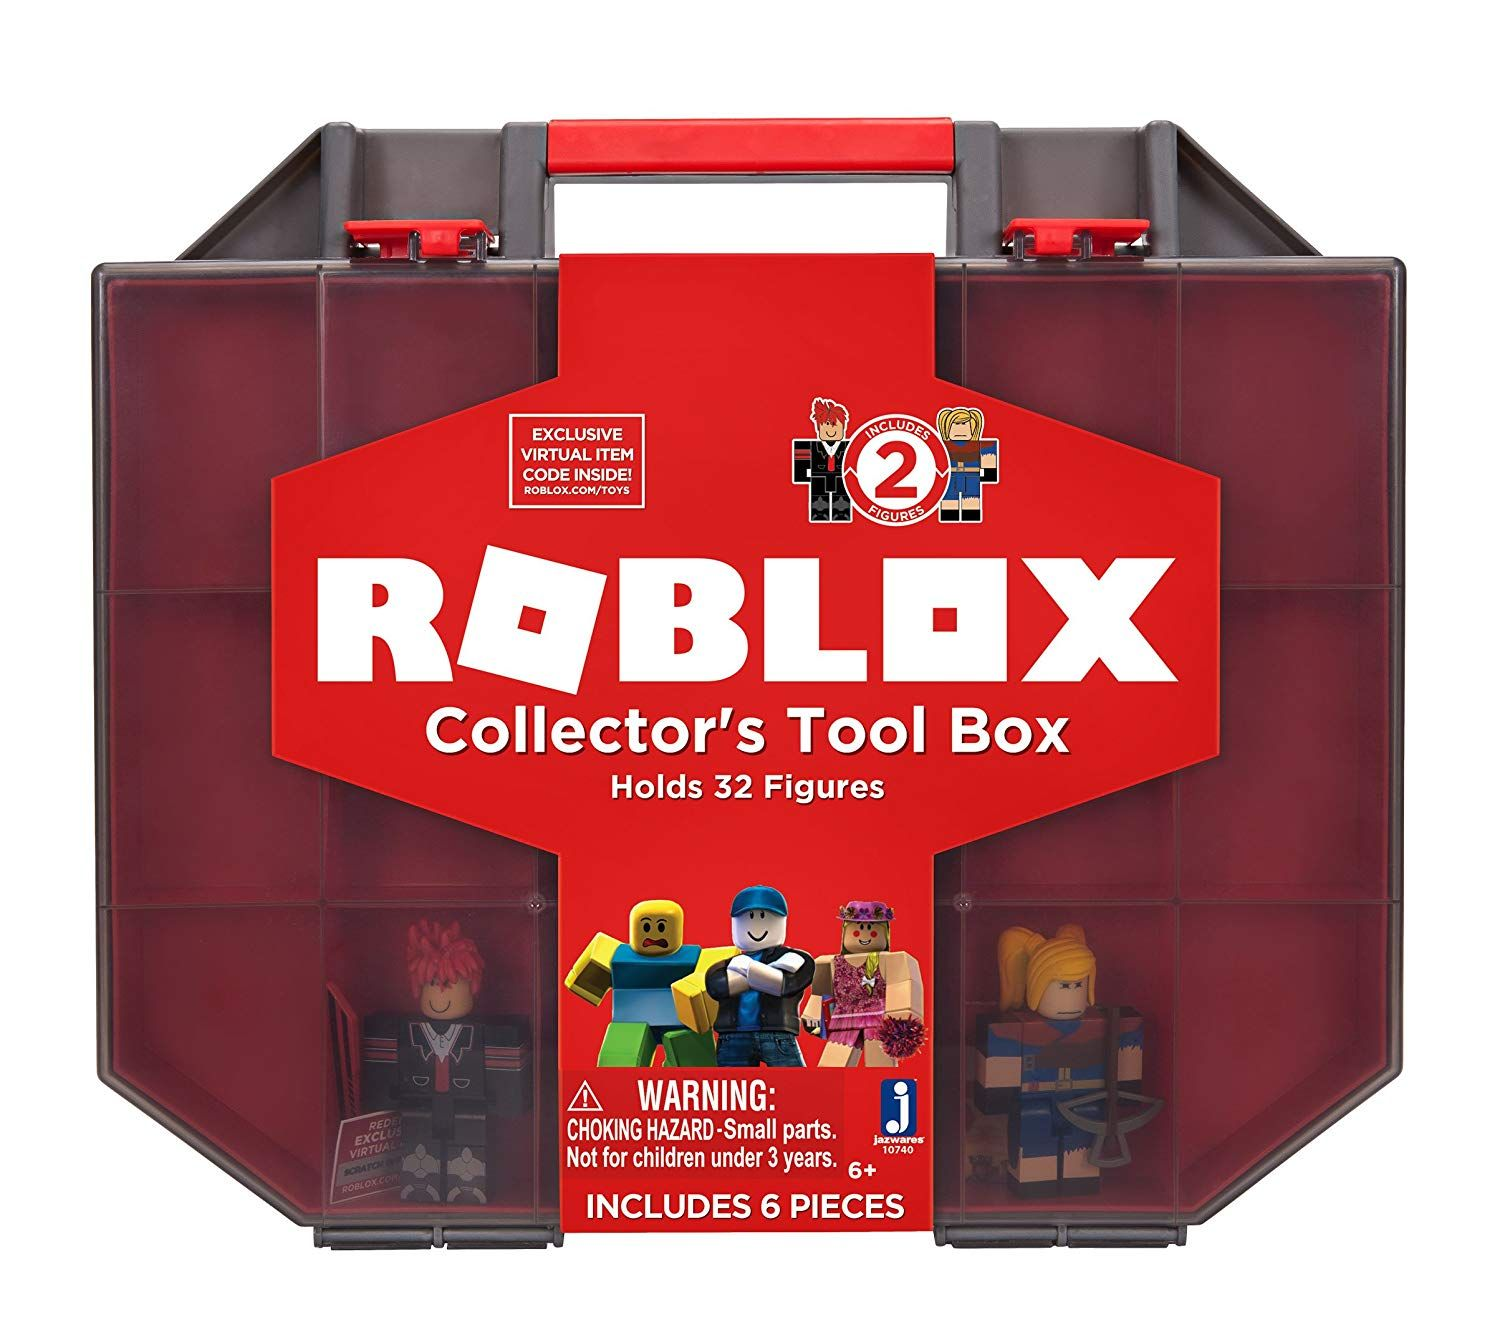 Roblox Collector's Tool Box Toys & Games